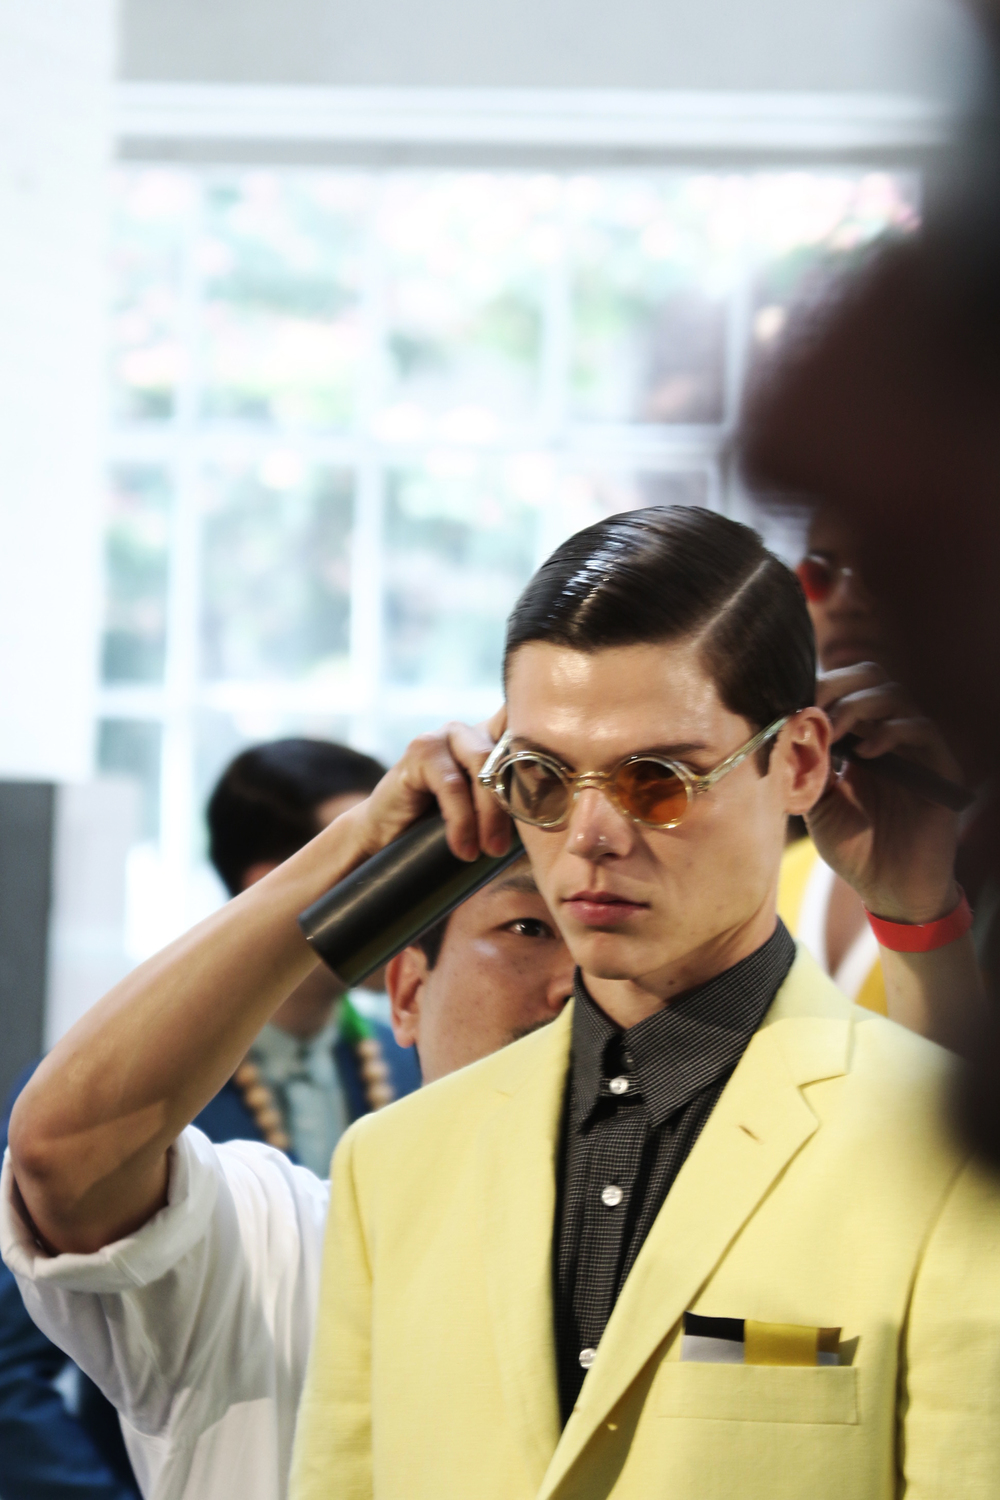 NEW YORK FASHION WEEK MENS #NYFWM | DAVID HART NYC | SPRING/SUMMER '16  Featuring: David Hart NYC @davidhartnyc @cadillac // Key Hair: Kien Hoang @kienhoang for Oribe Hair Care @oribe // Hair Team: Oribe Hair Care Team | Roz Corpuz @lapetiterozay for Umbrella Salon @umbrellasalon @industriasuperstudio Photo by: Anthony Deeying